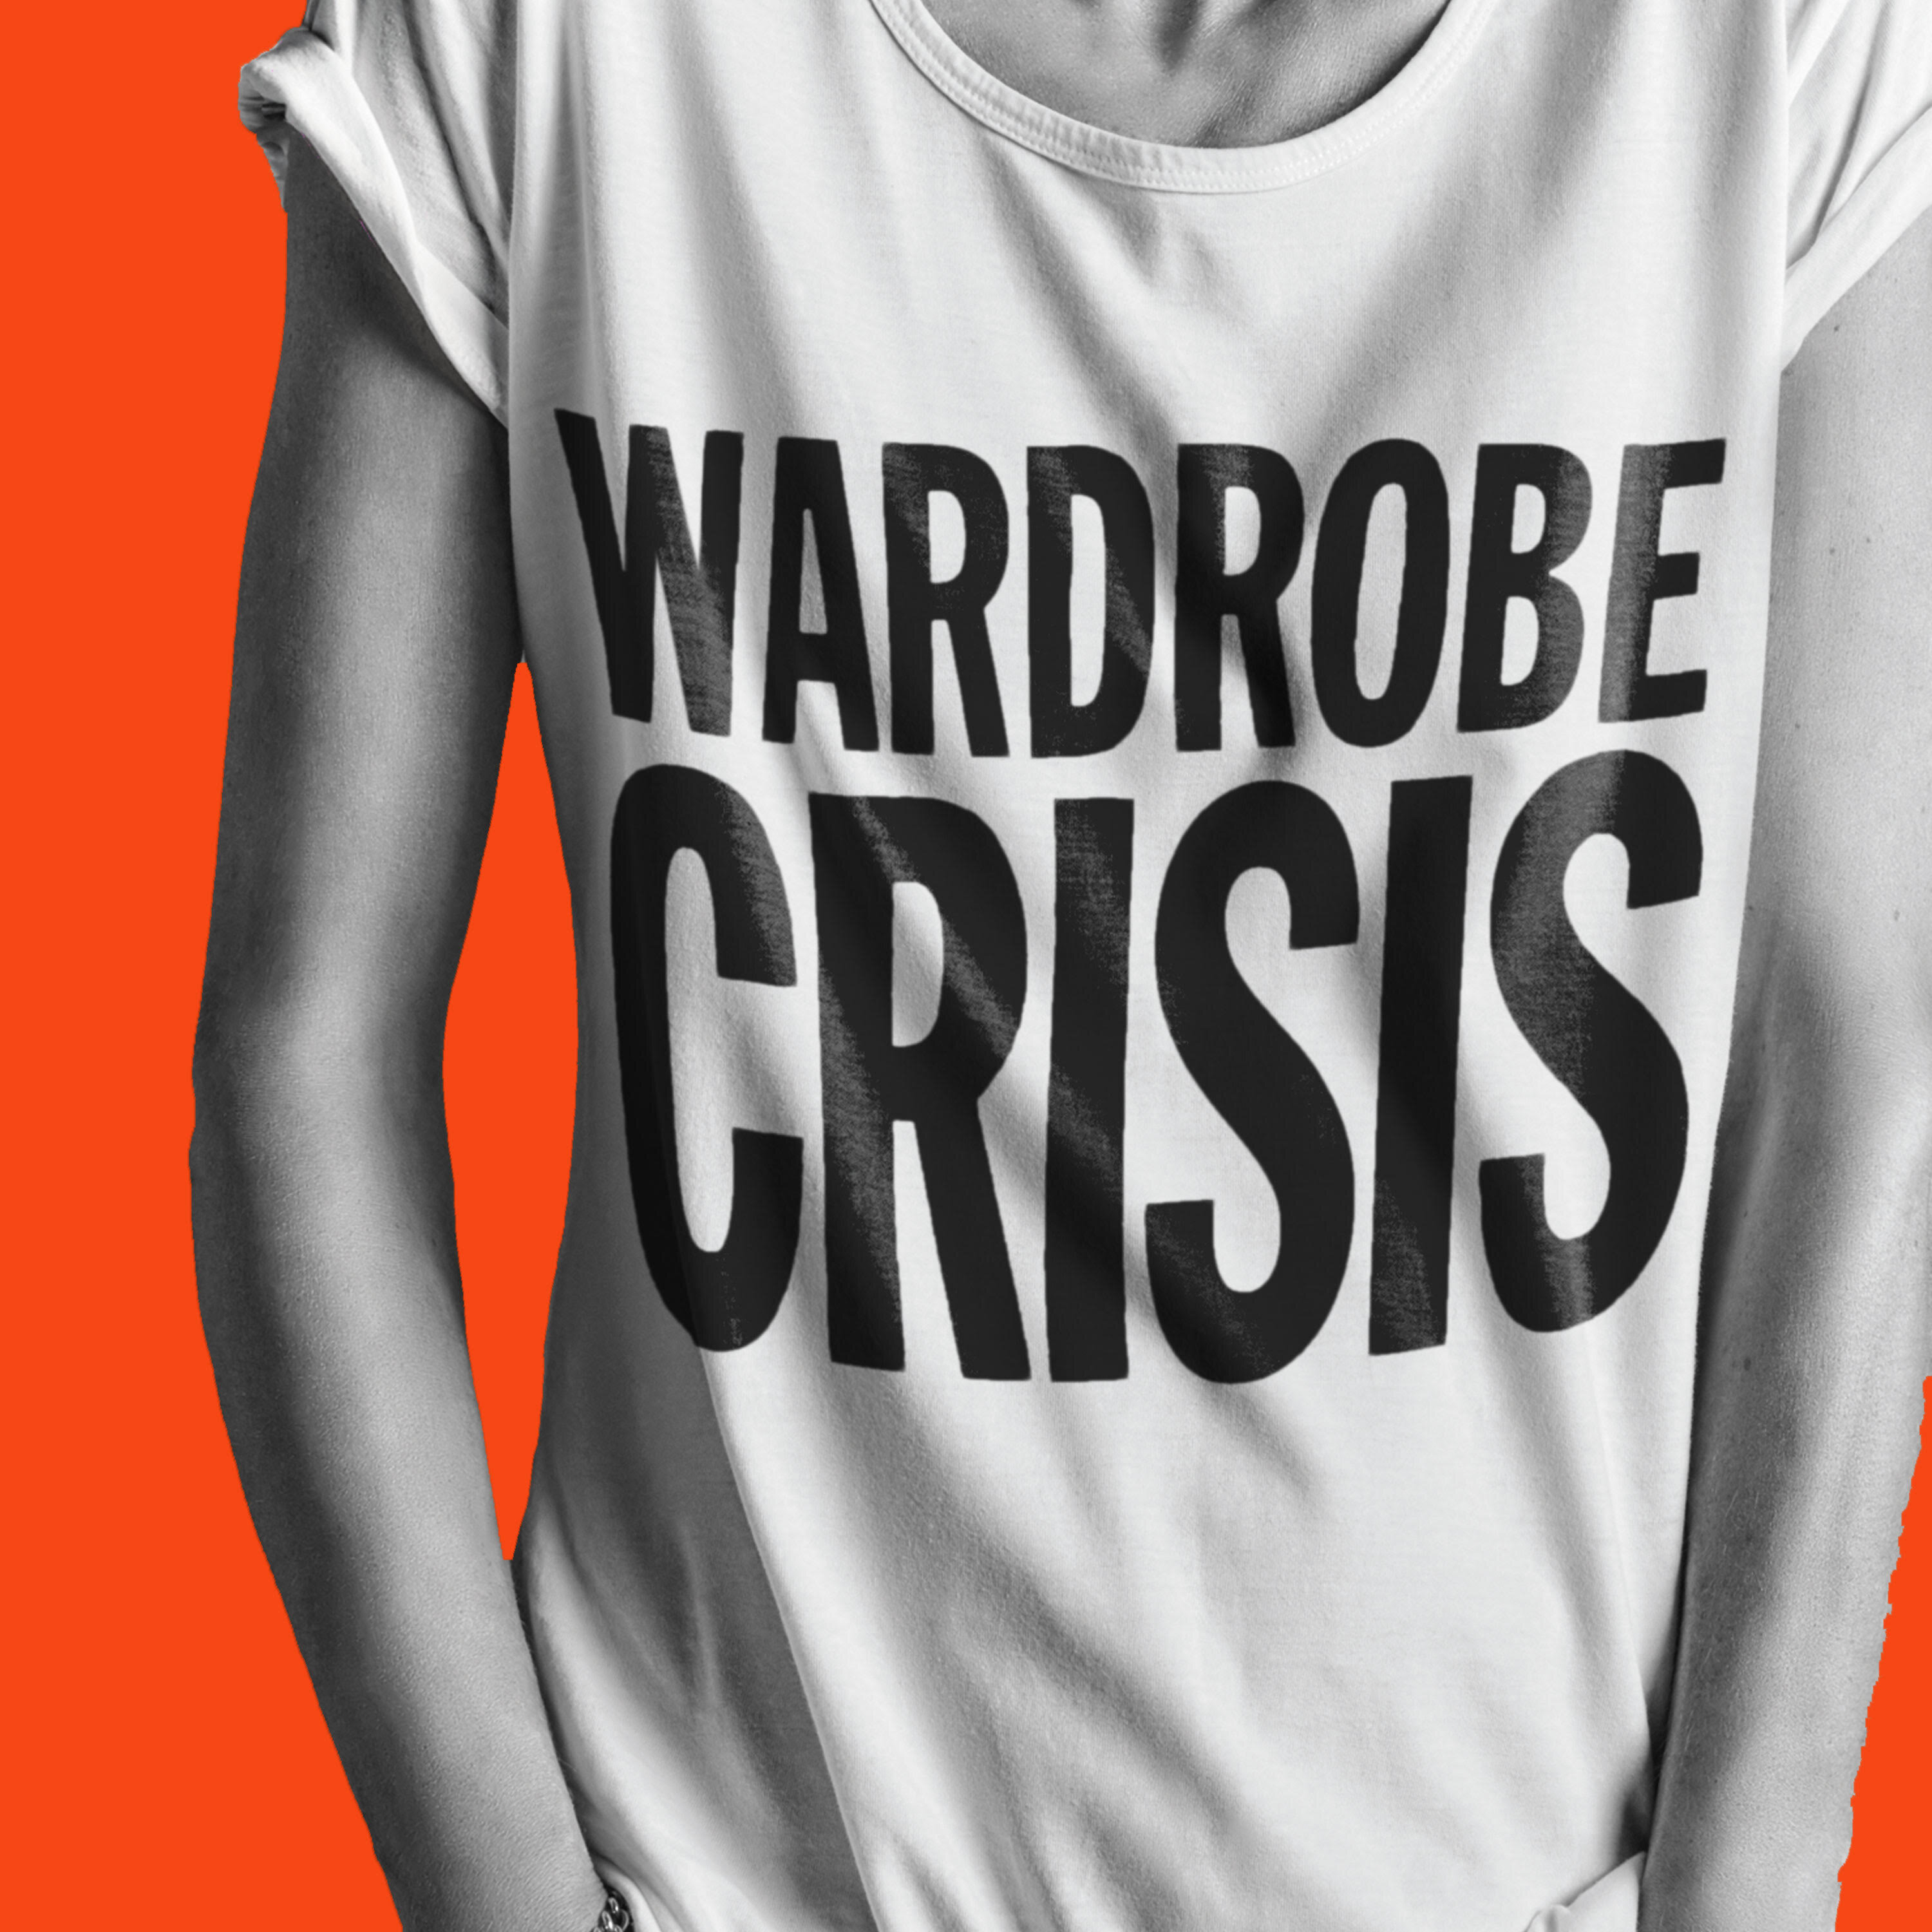 Ethical Fashion & Living Wages